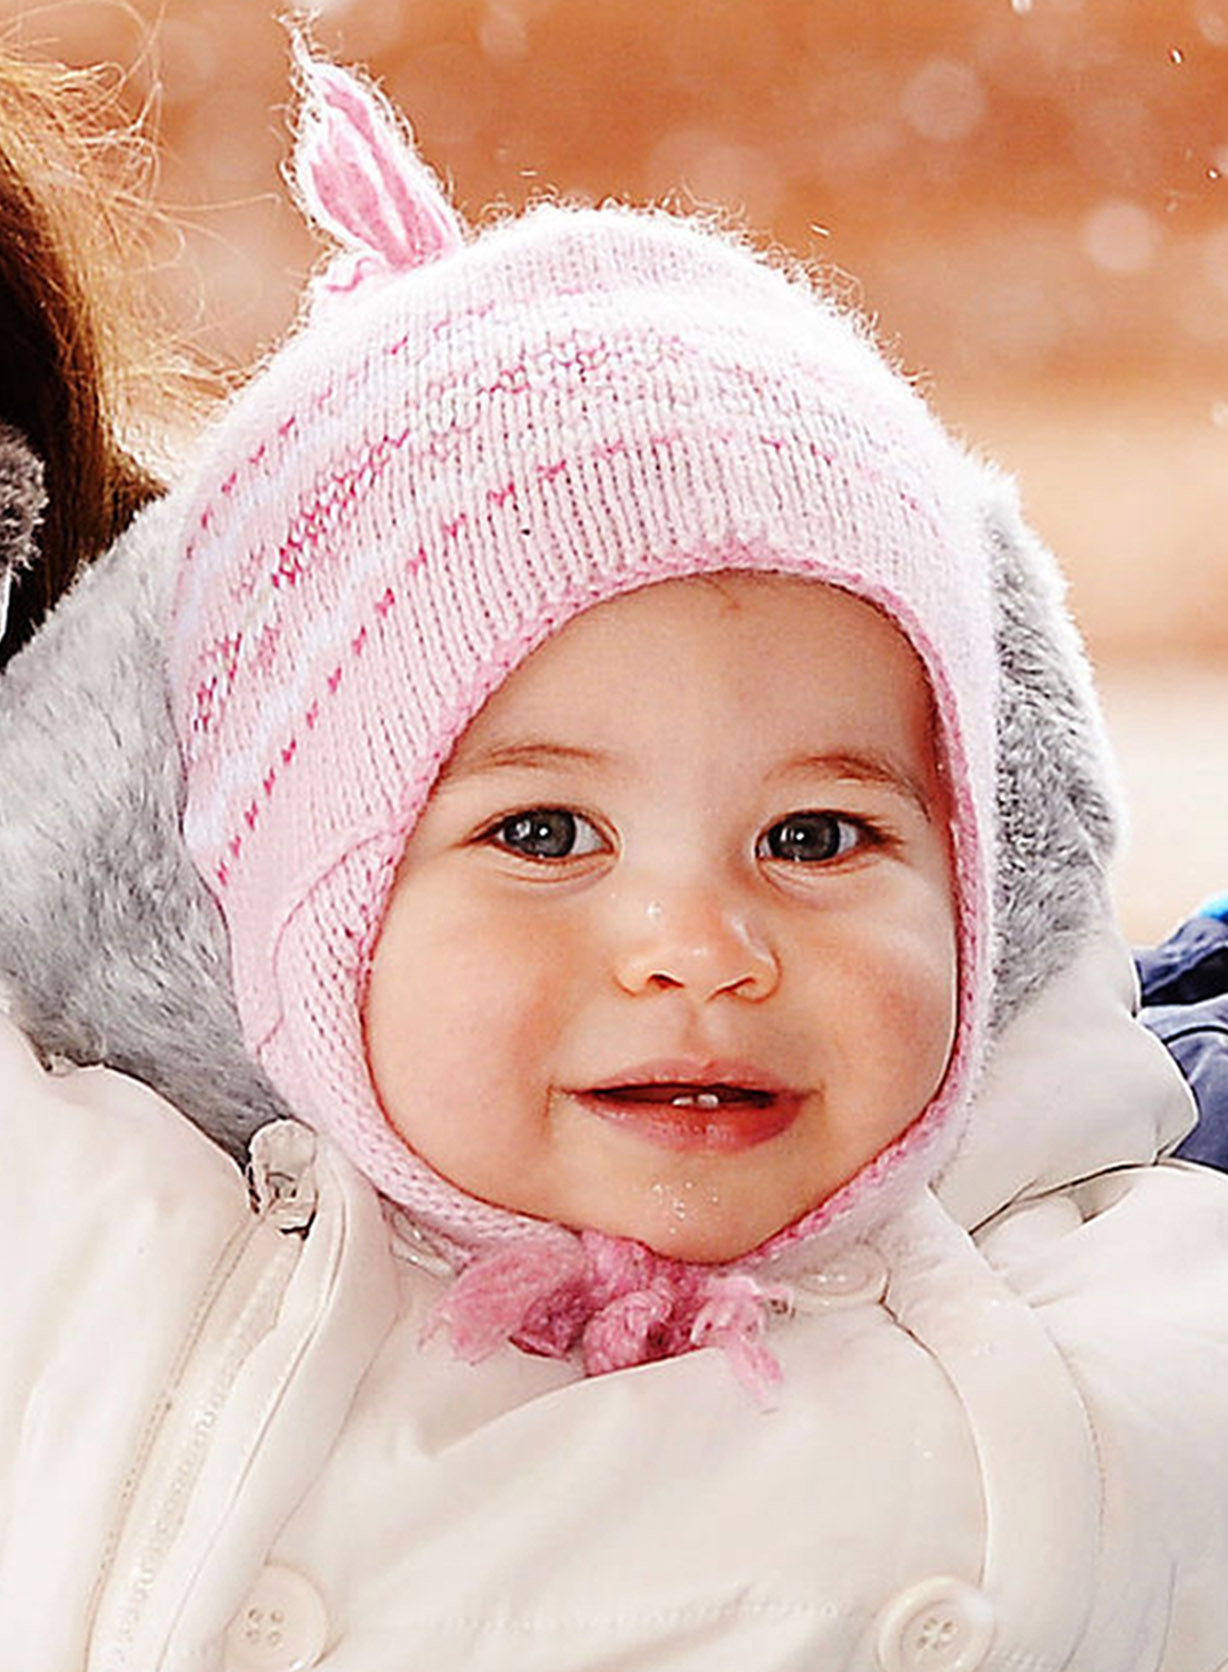 Princess Charlotte during short private break skiing in the French Alps on March 3, 2016.